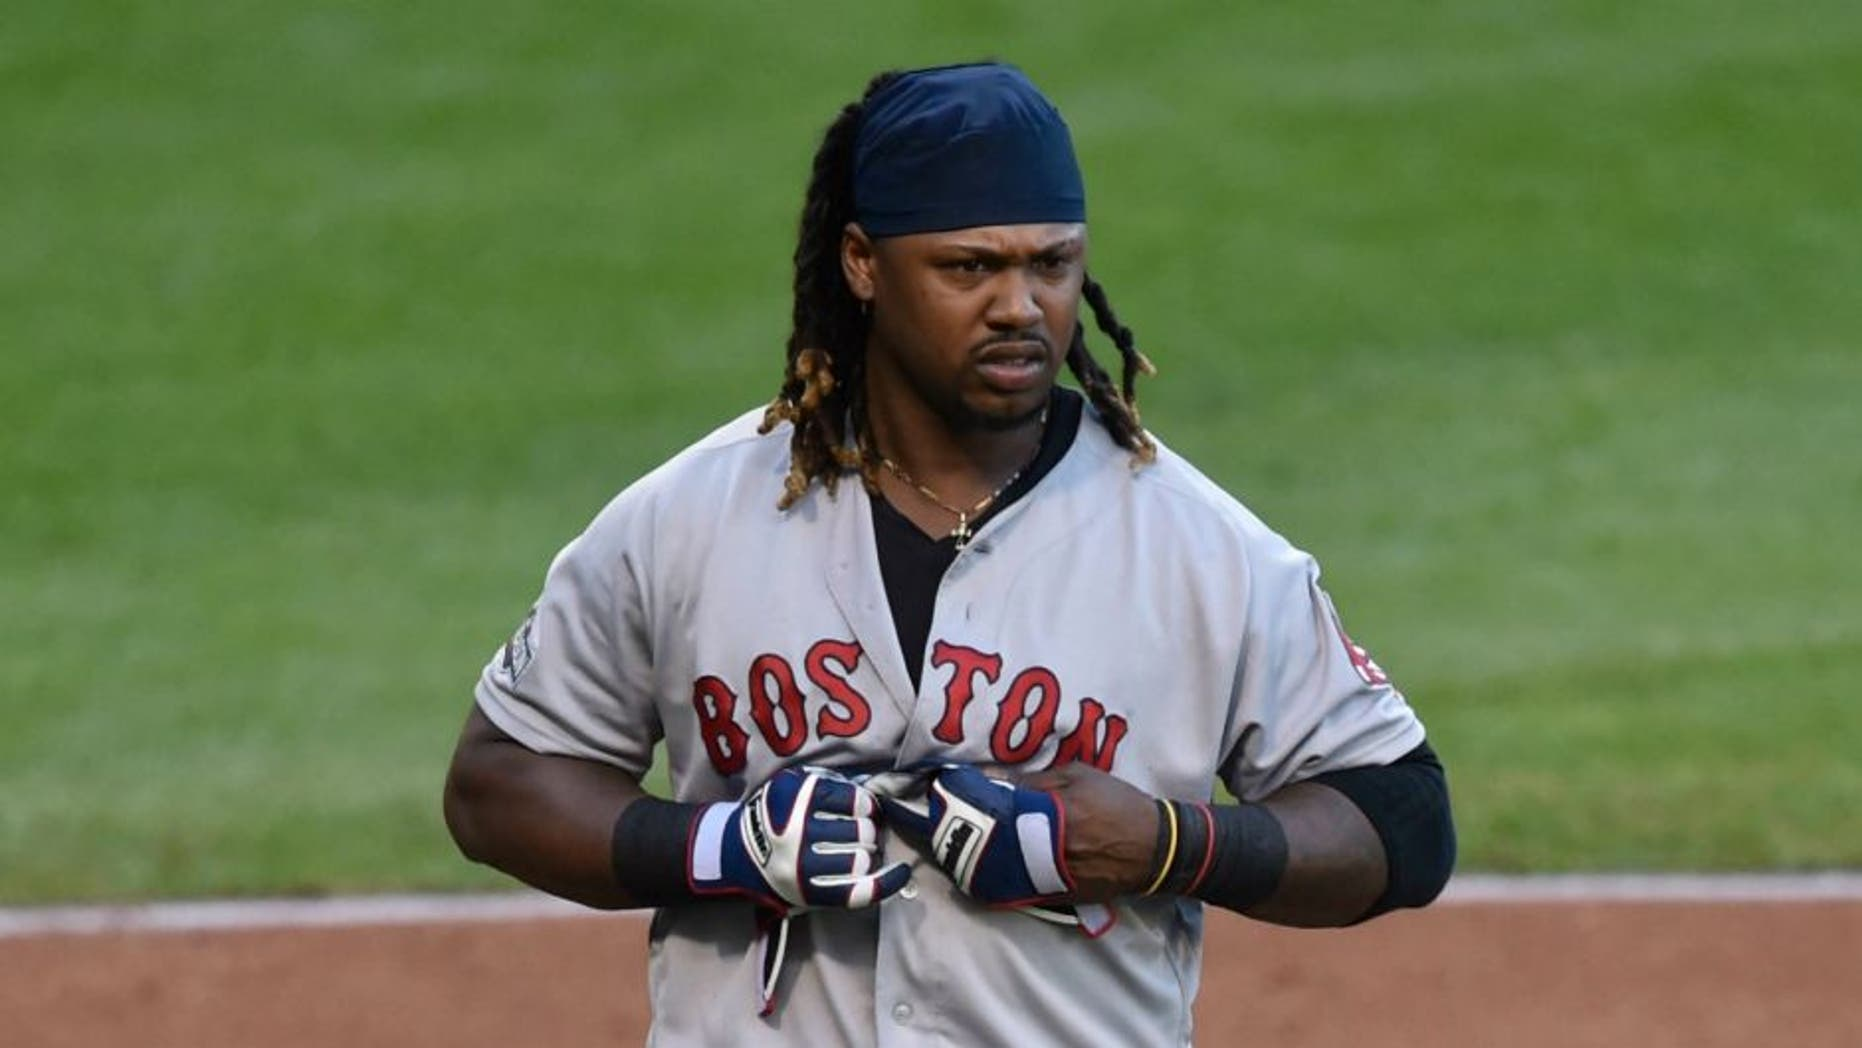 Oct 7, 2016; Cleveland, OH, USA; Boston Red Sox first baseman Hanley Ramirez (13) reacts after striking out to end in the top of the fourth inning against the Cleveland Indians in game two of the 2016 ALDS playoff baseball series at Progressive Field. Mandatory Credit: David Richard-USA TODAY Sports